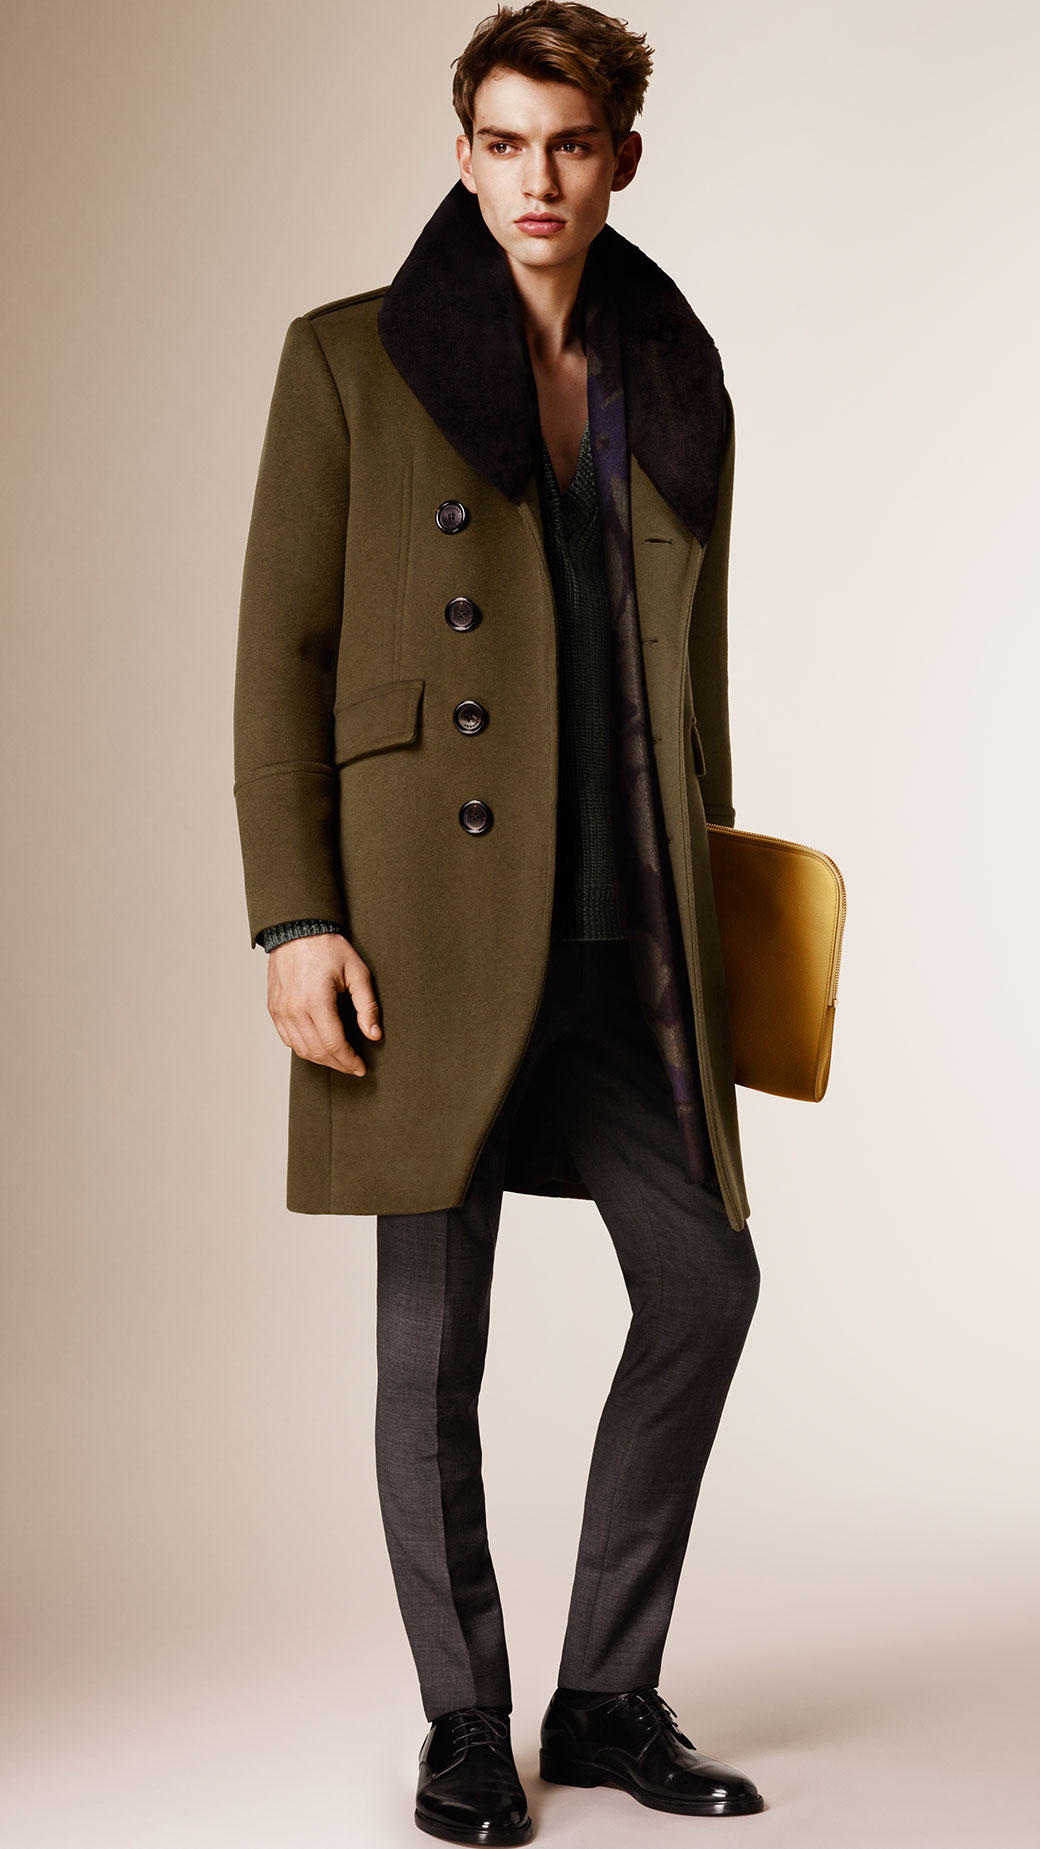 Burberry Wool Cashmere Topcoat With Detachable Fur Collar in Green